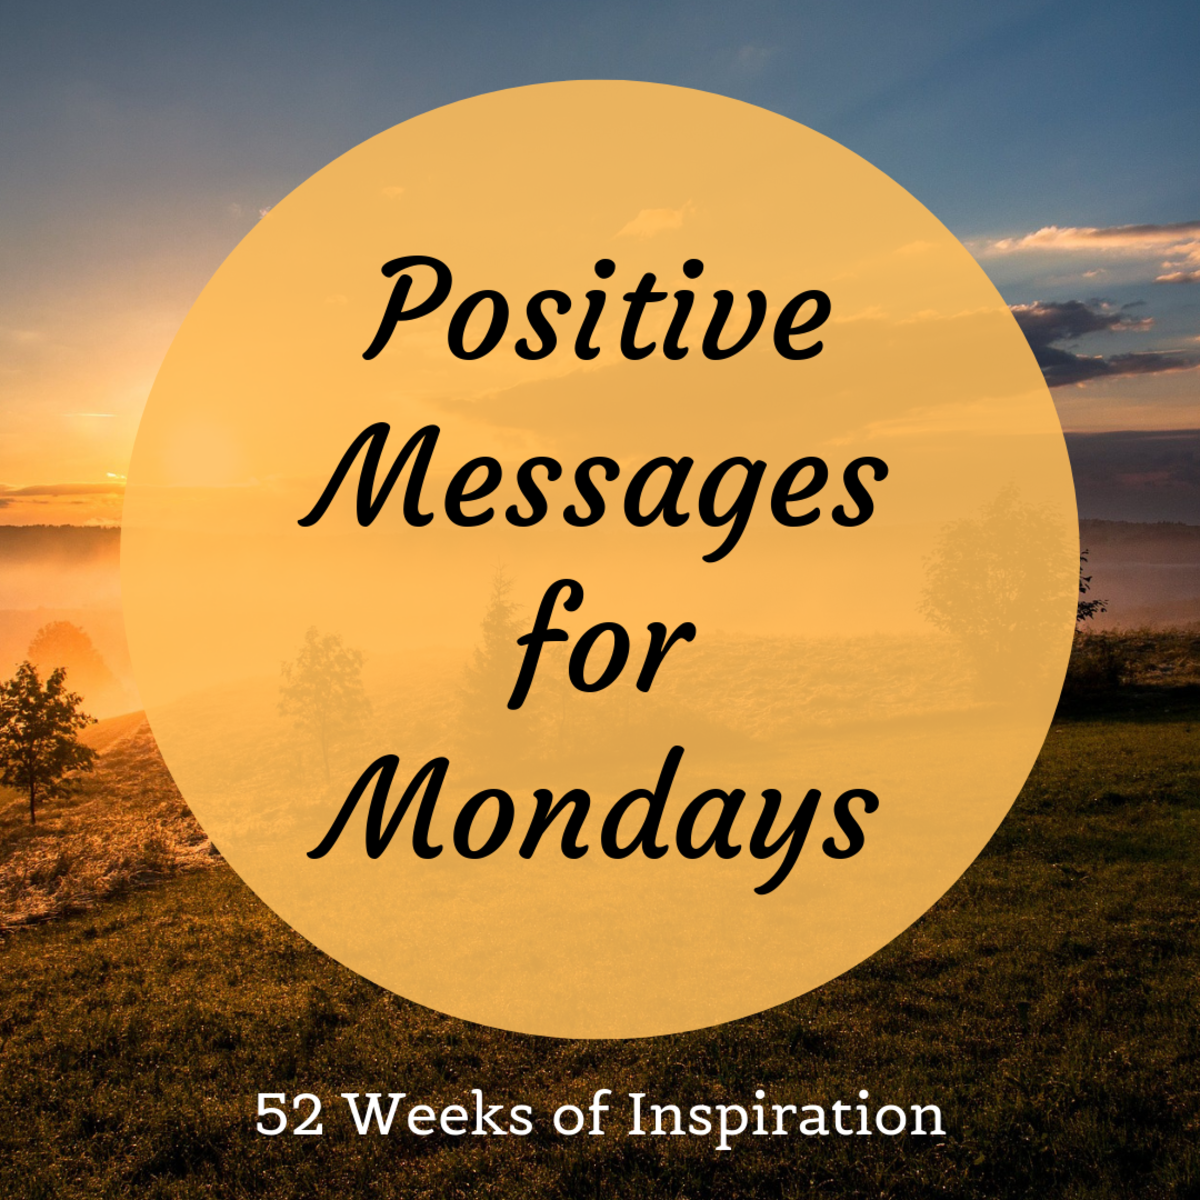 View 52 quotes to help inspire your Mondays, organized based on the seasons of the year.